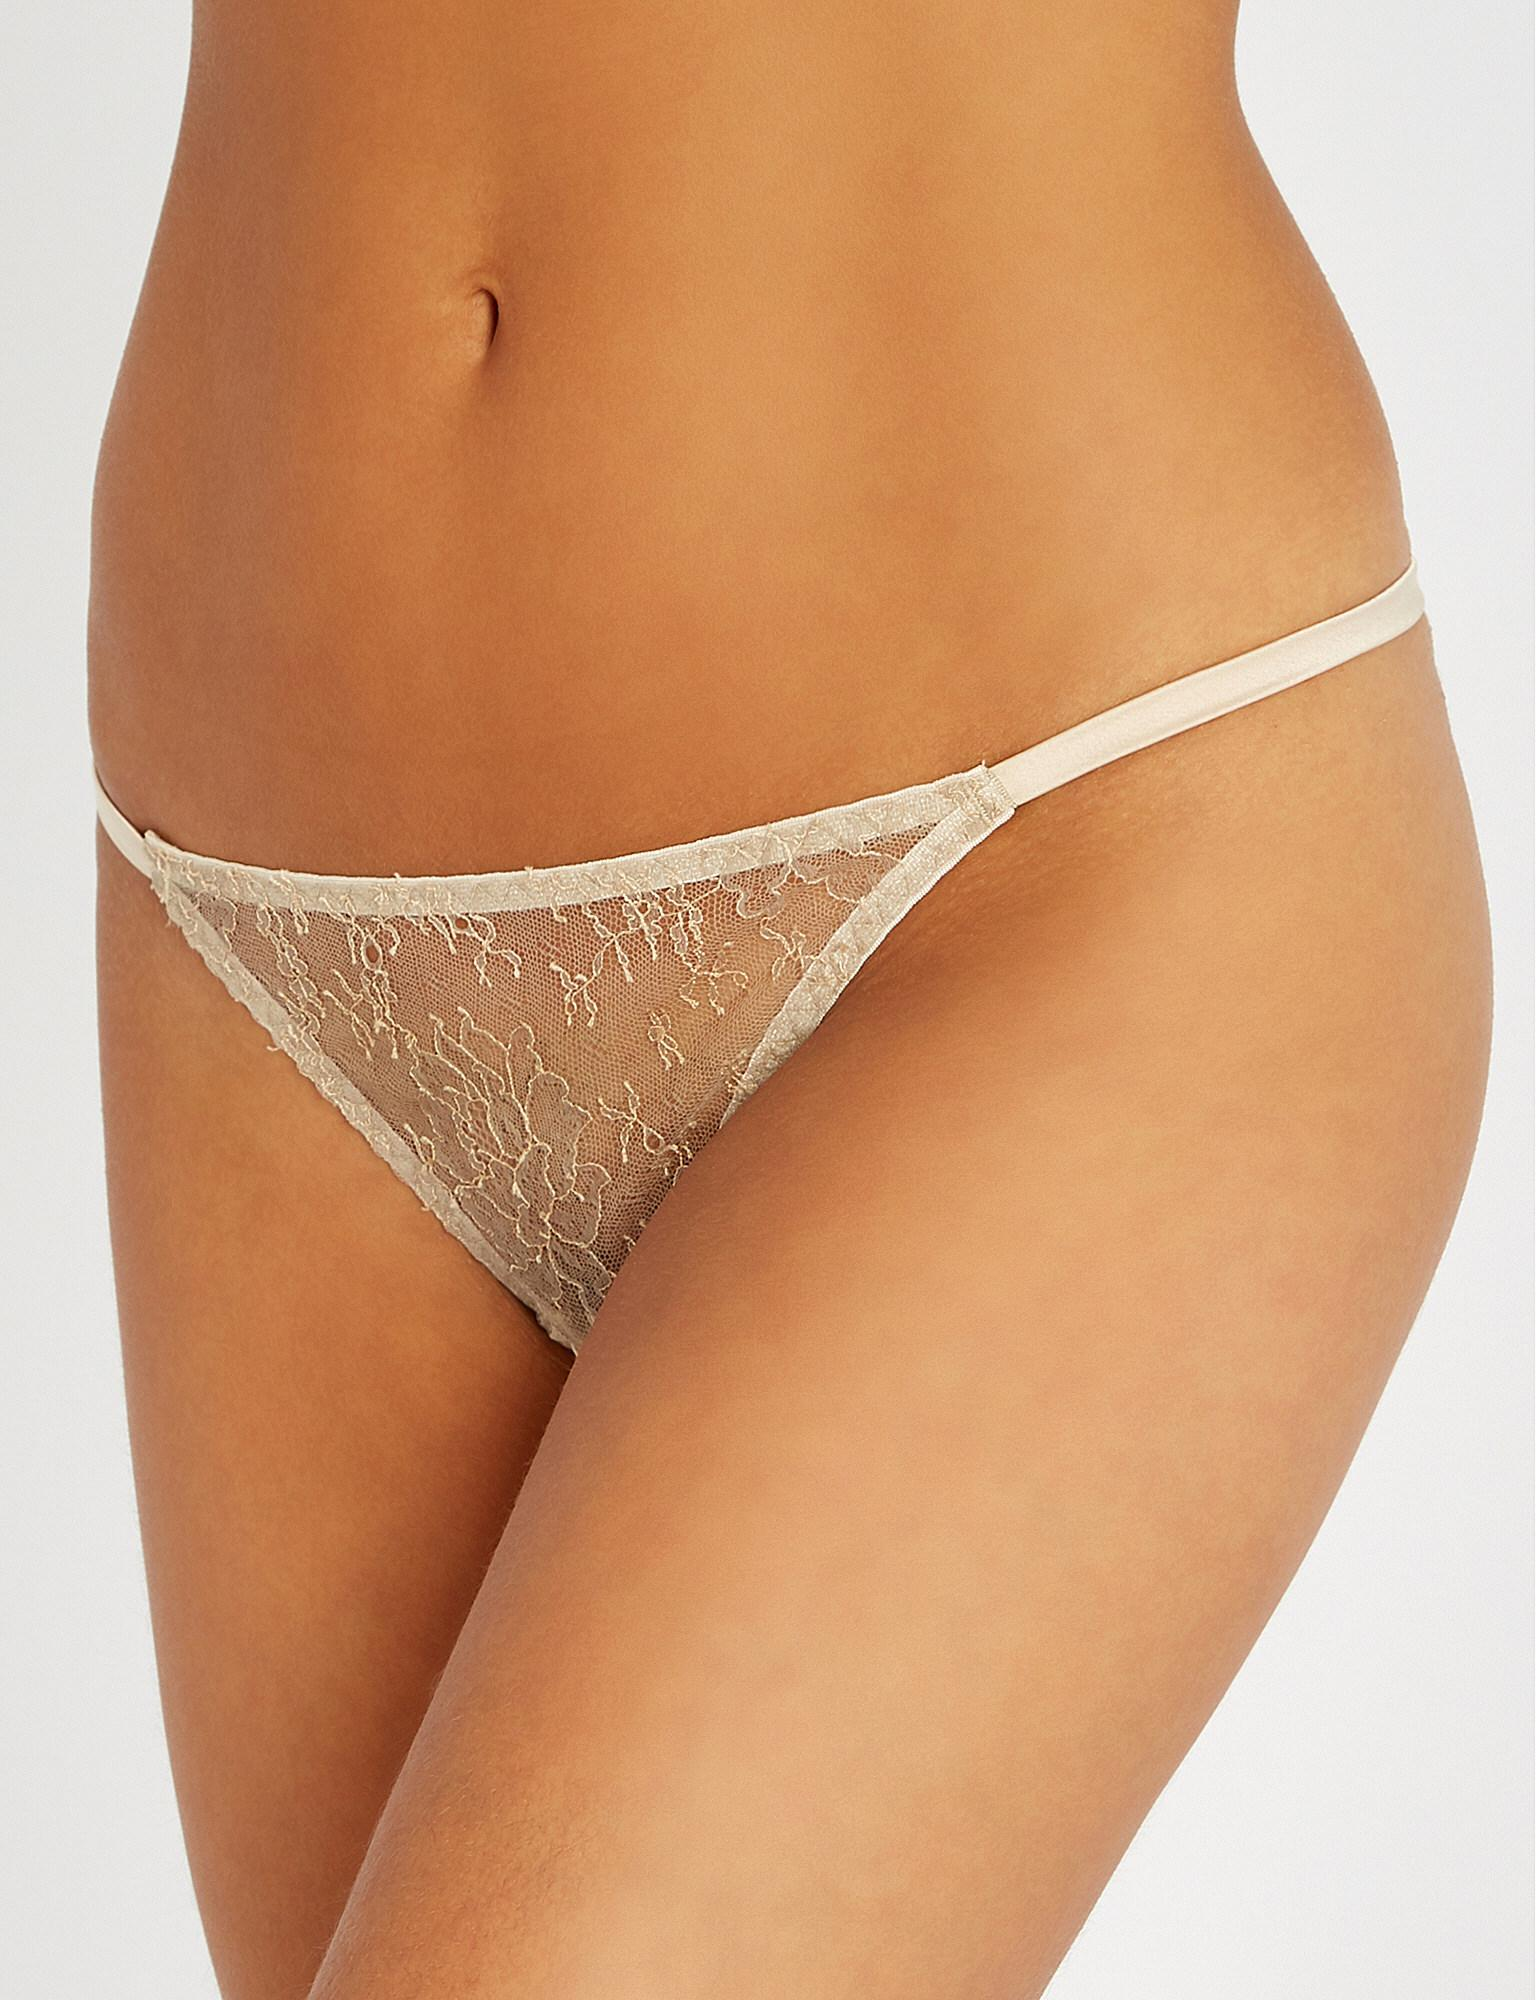 8651bbc3d64 Lyst - Myla Darling Row Stretch-lace Thong